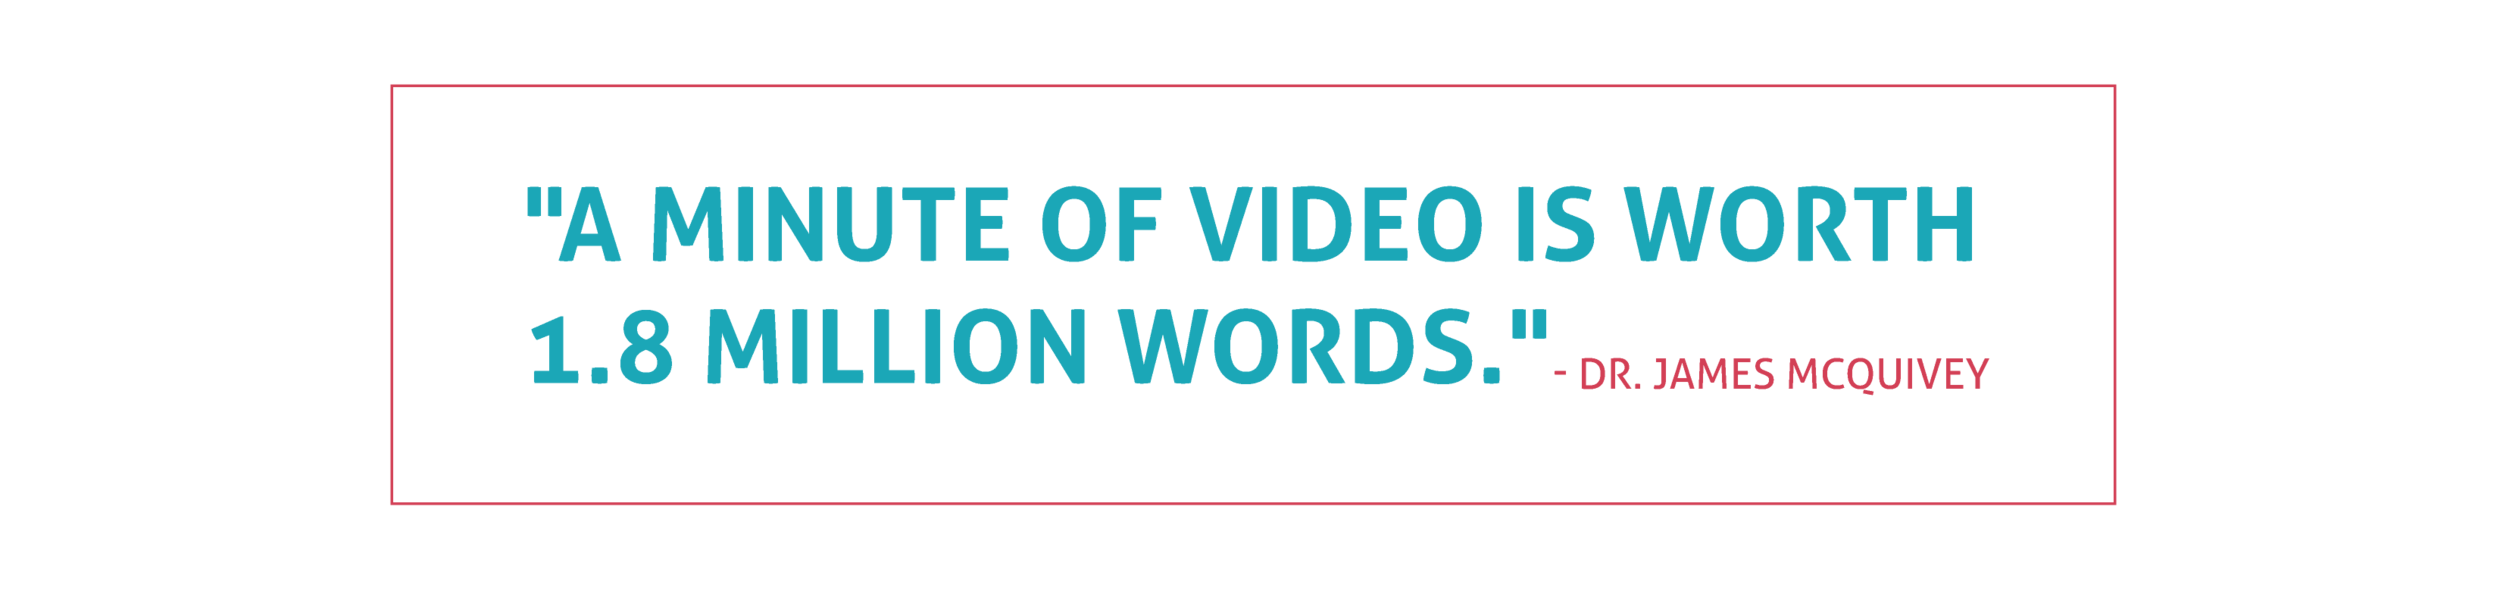 VideoQuote-01.png